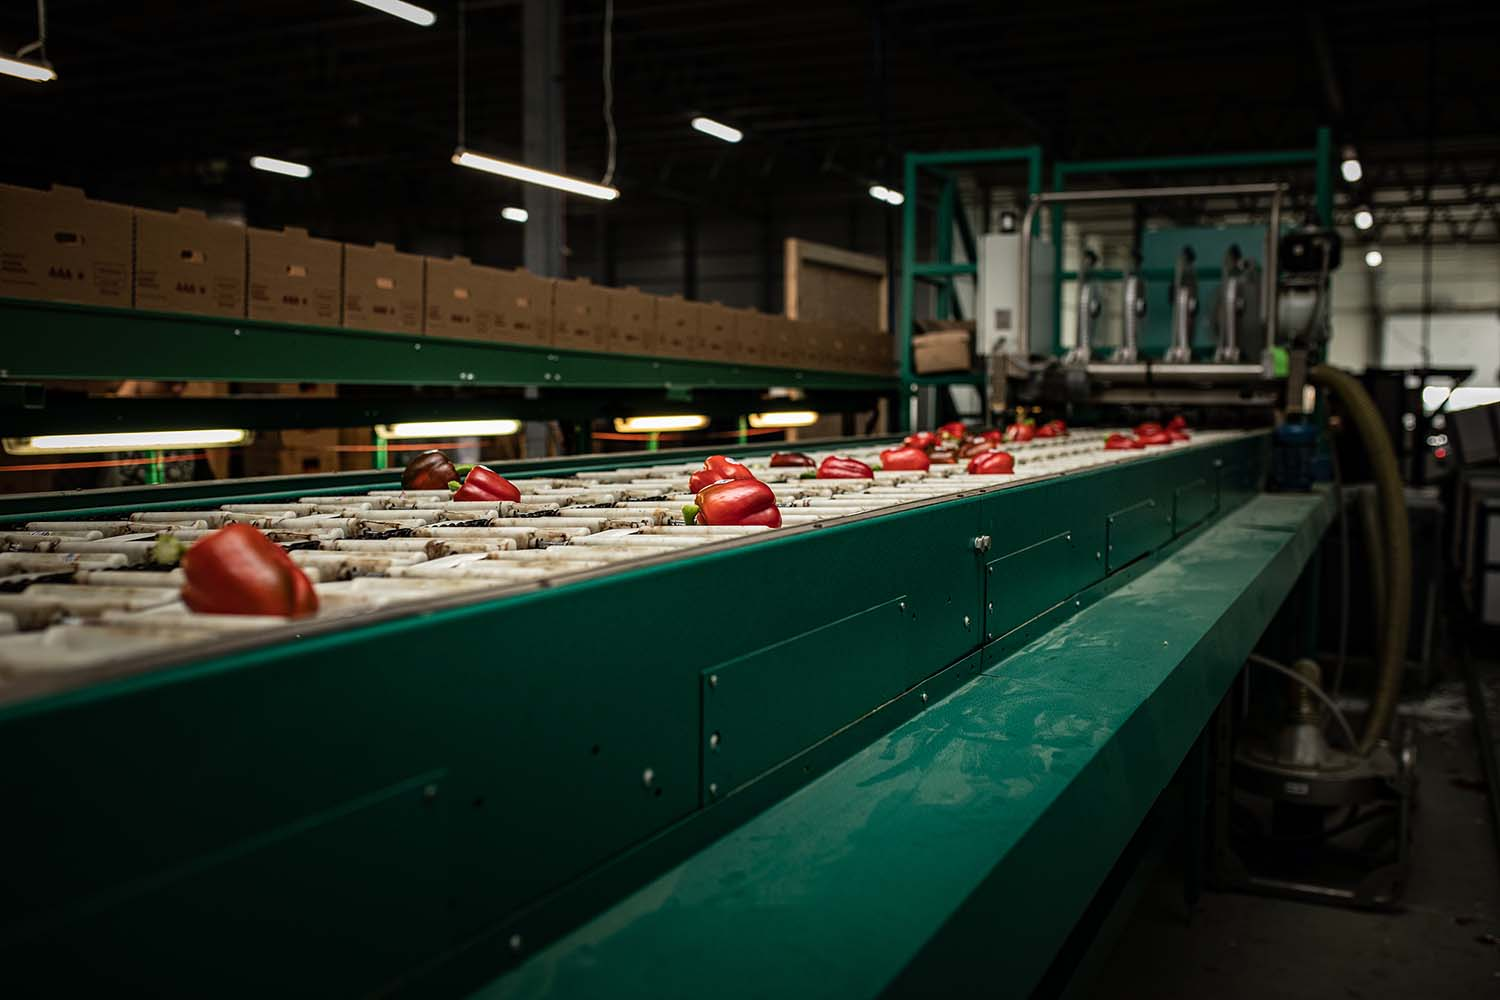 Red peppers on a conveyor belt